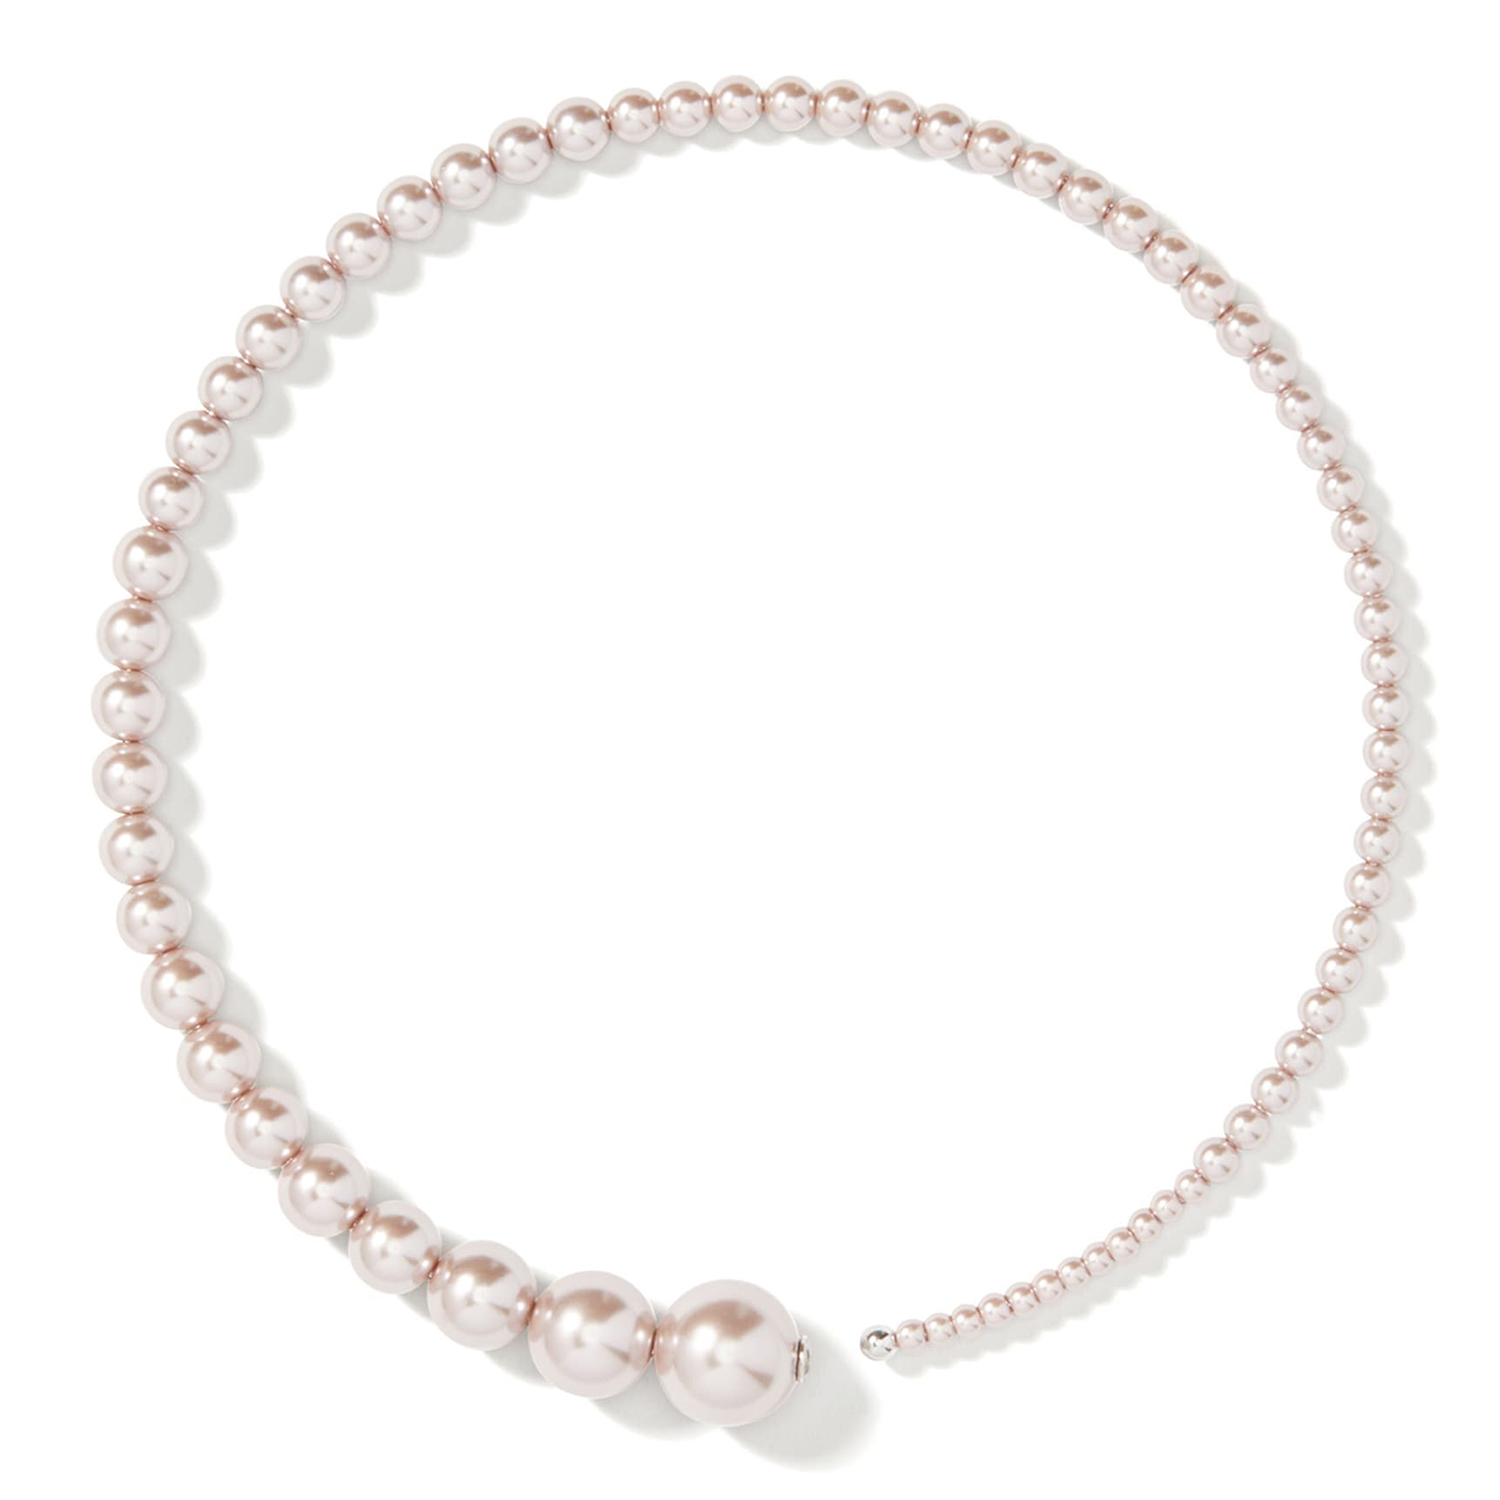 Kate Spade New York Modern Imitation Pearl Collar Necklace